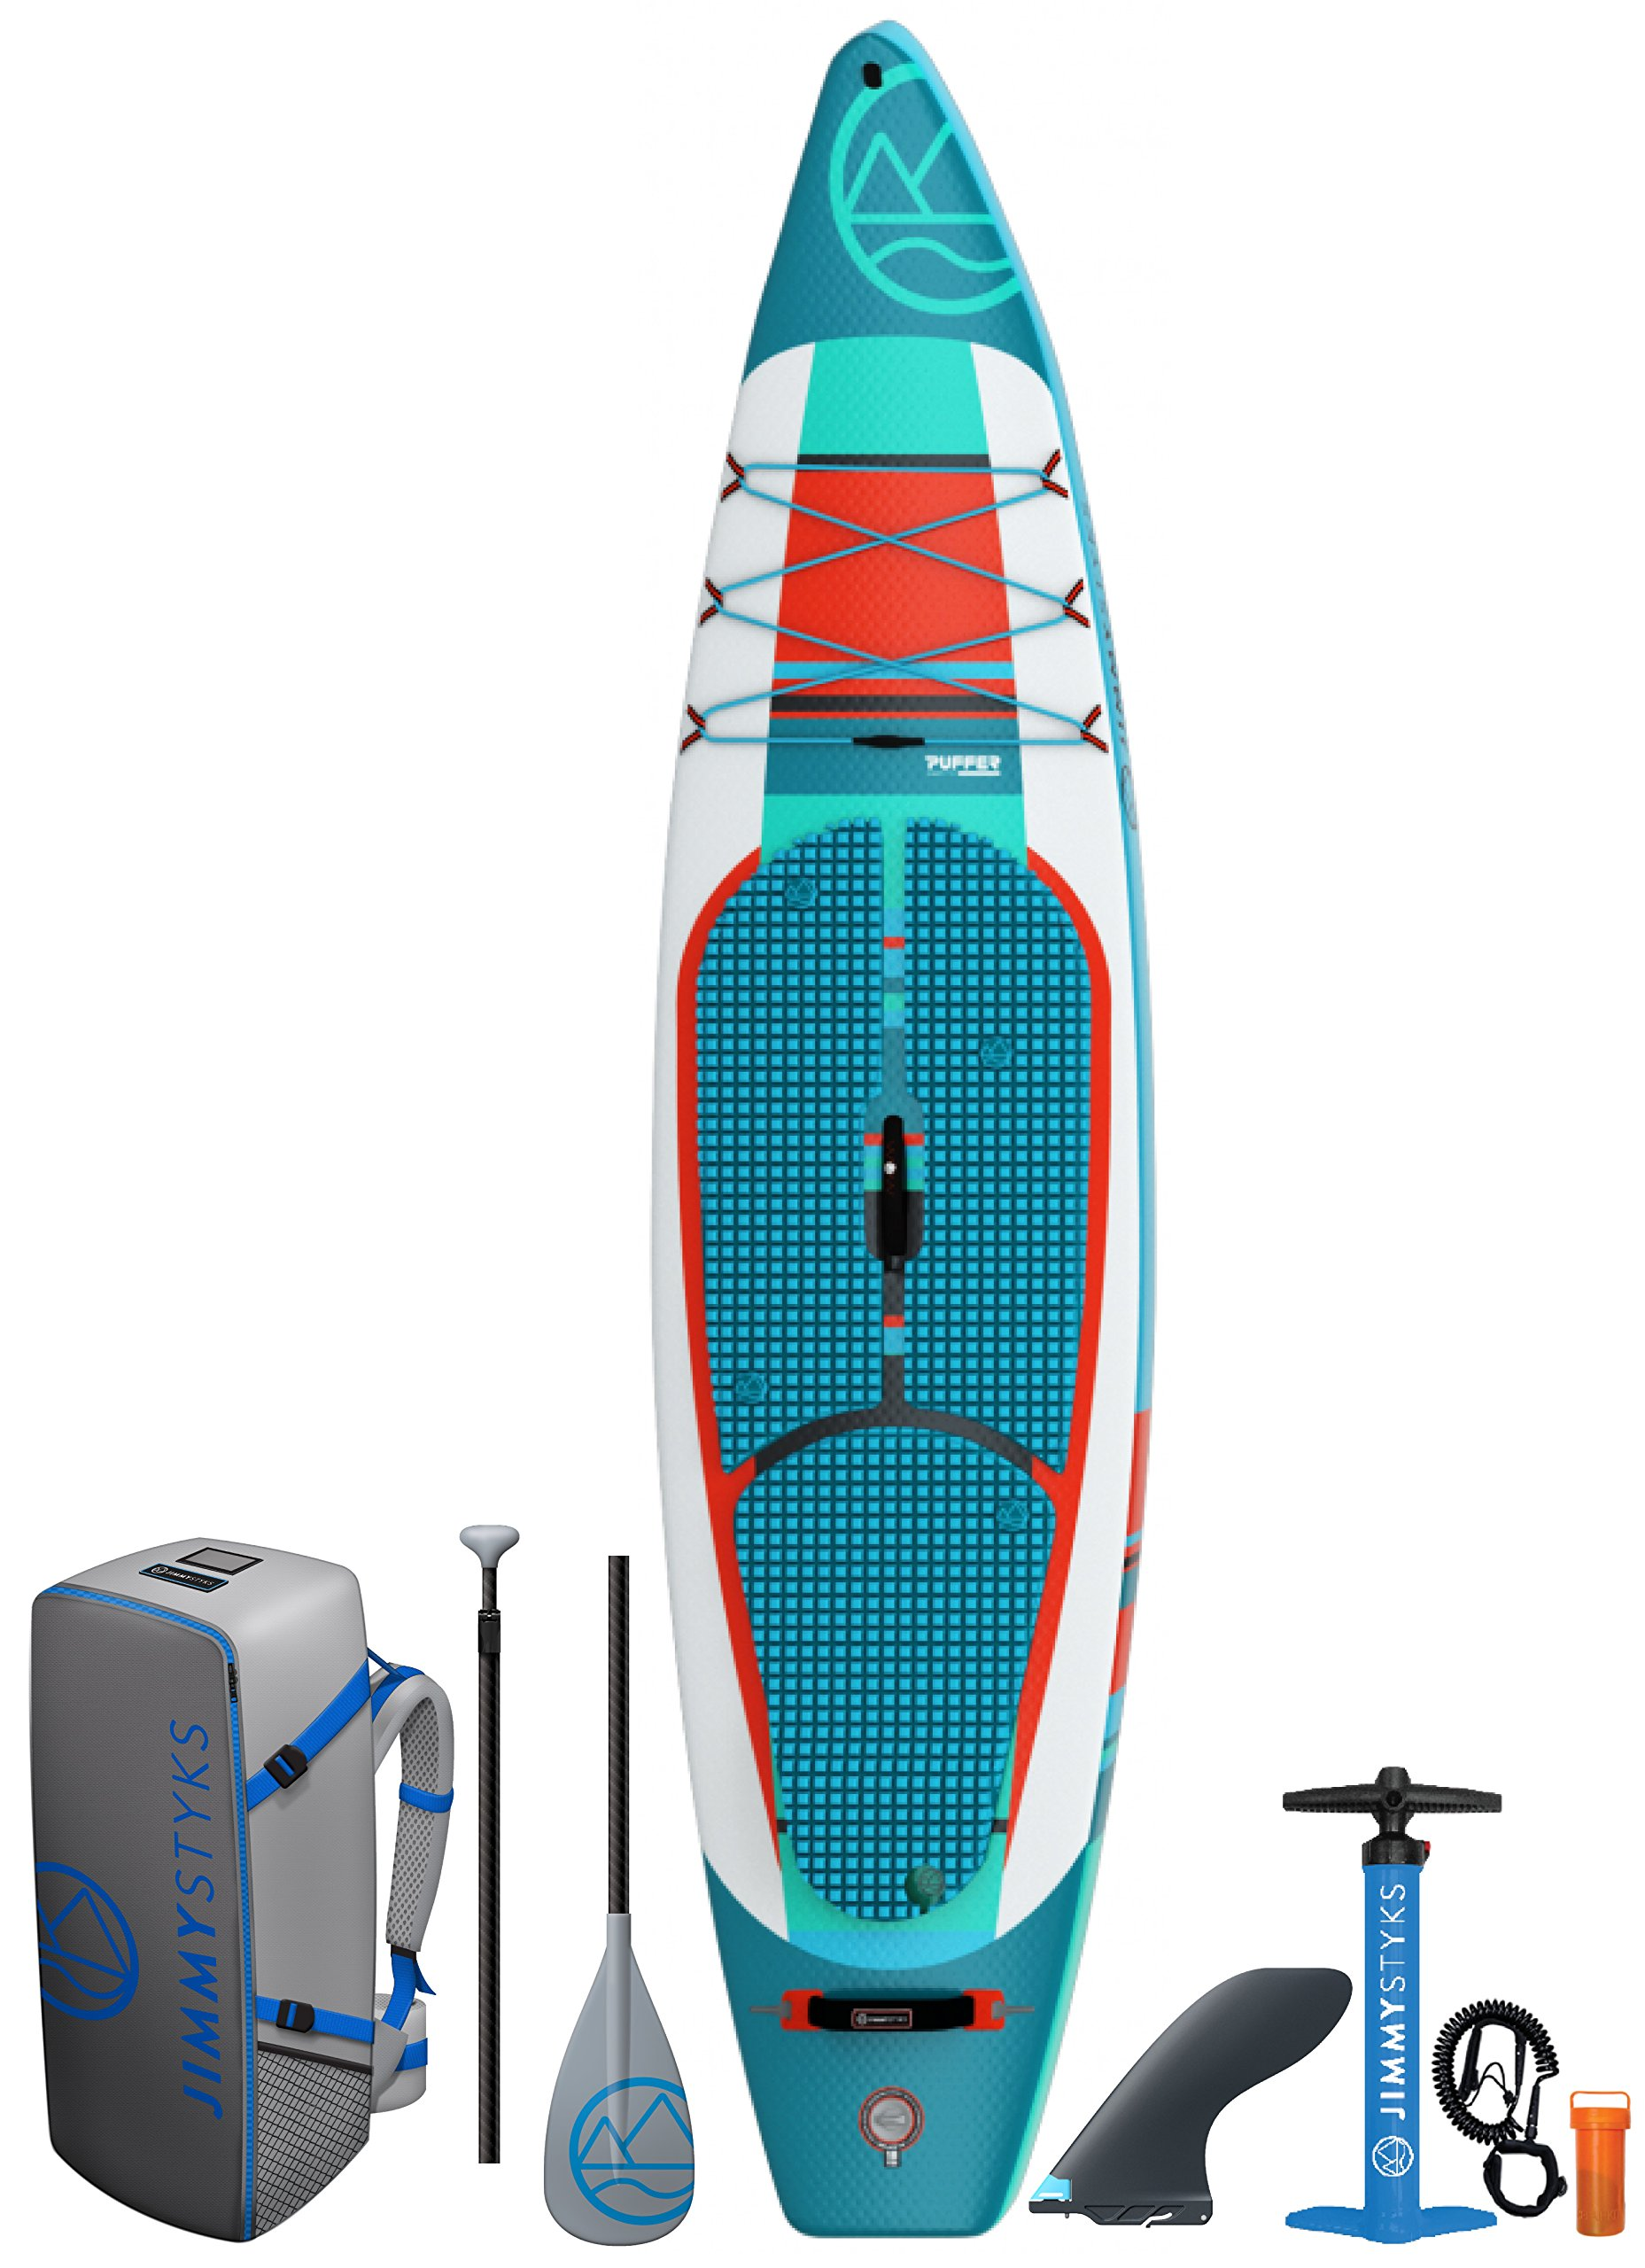 Jimmy Styks Puffer (2018) Inflatable Stand Up Paddle Board Green & Orange 11''6'' Long, 31'' Wide 5.9'' Thick | Touring Inflatable SUP | Includes Click-N-Go Fin, Leash, Pump, Travel Paddle and Board Bag